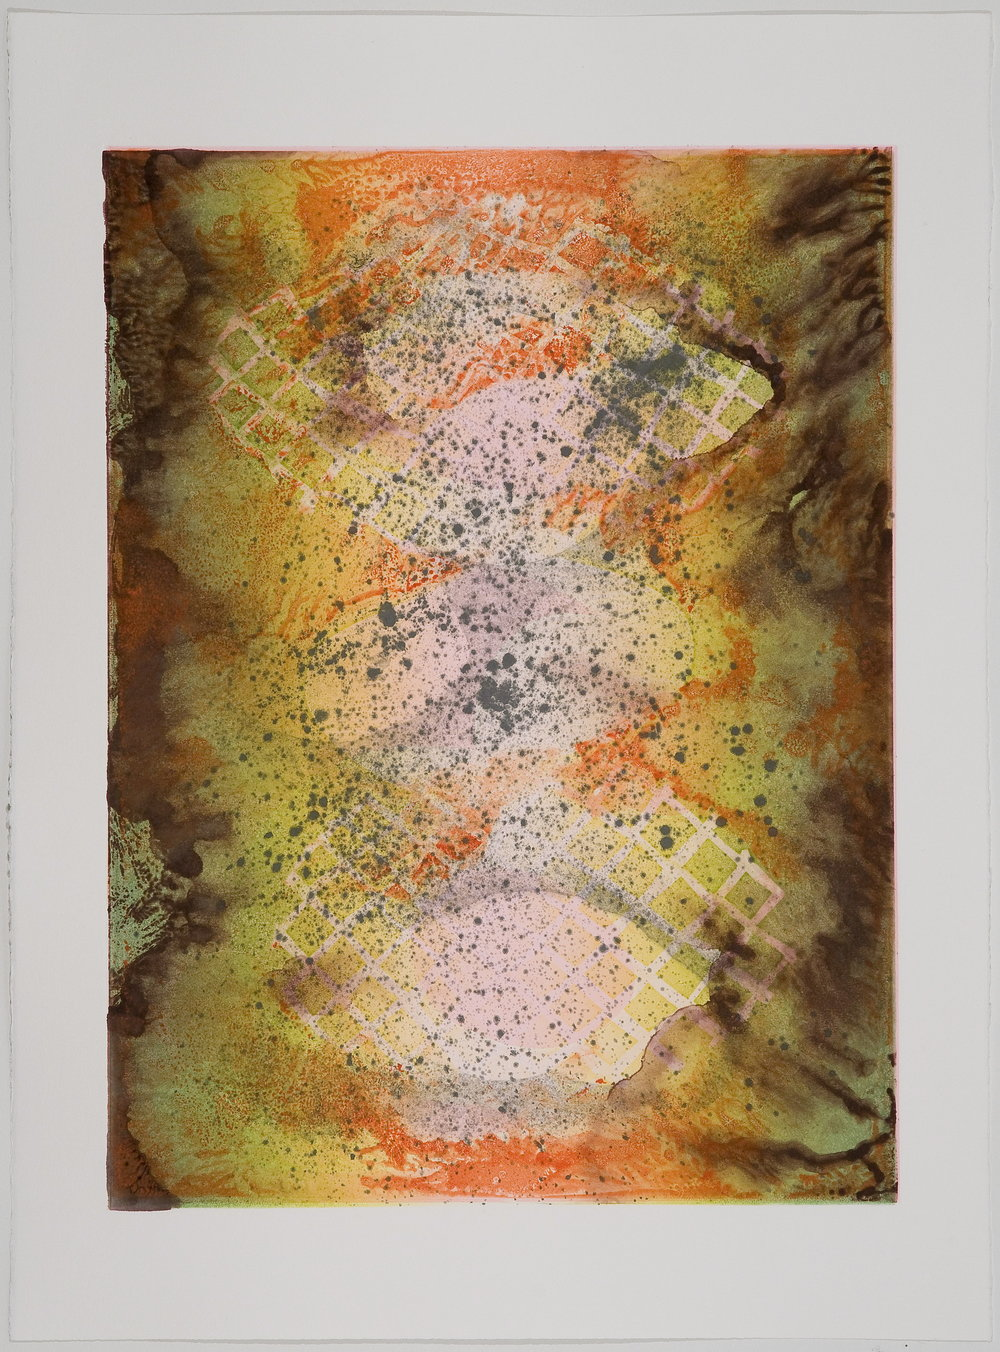 Untitled (V) , 2010 Monotype Image Size: 18 x 26 inches Paper Size: 22 x 30 inches Series of 6